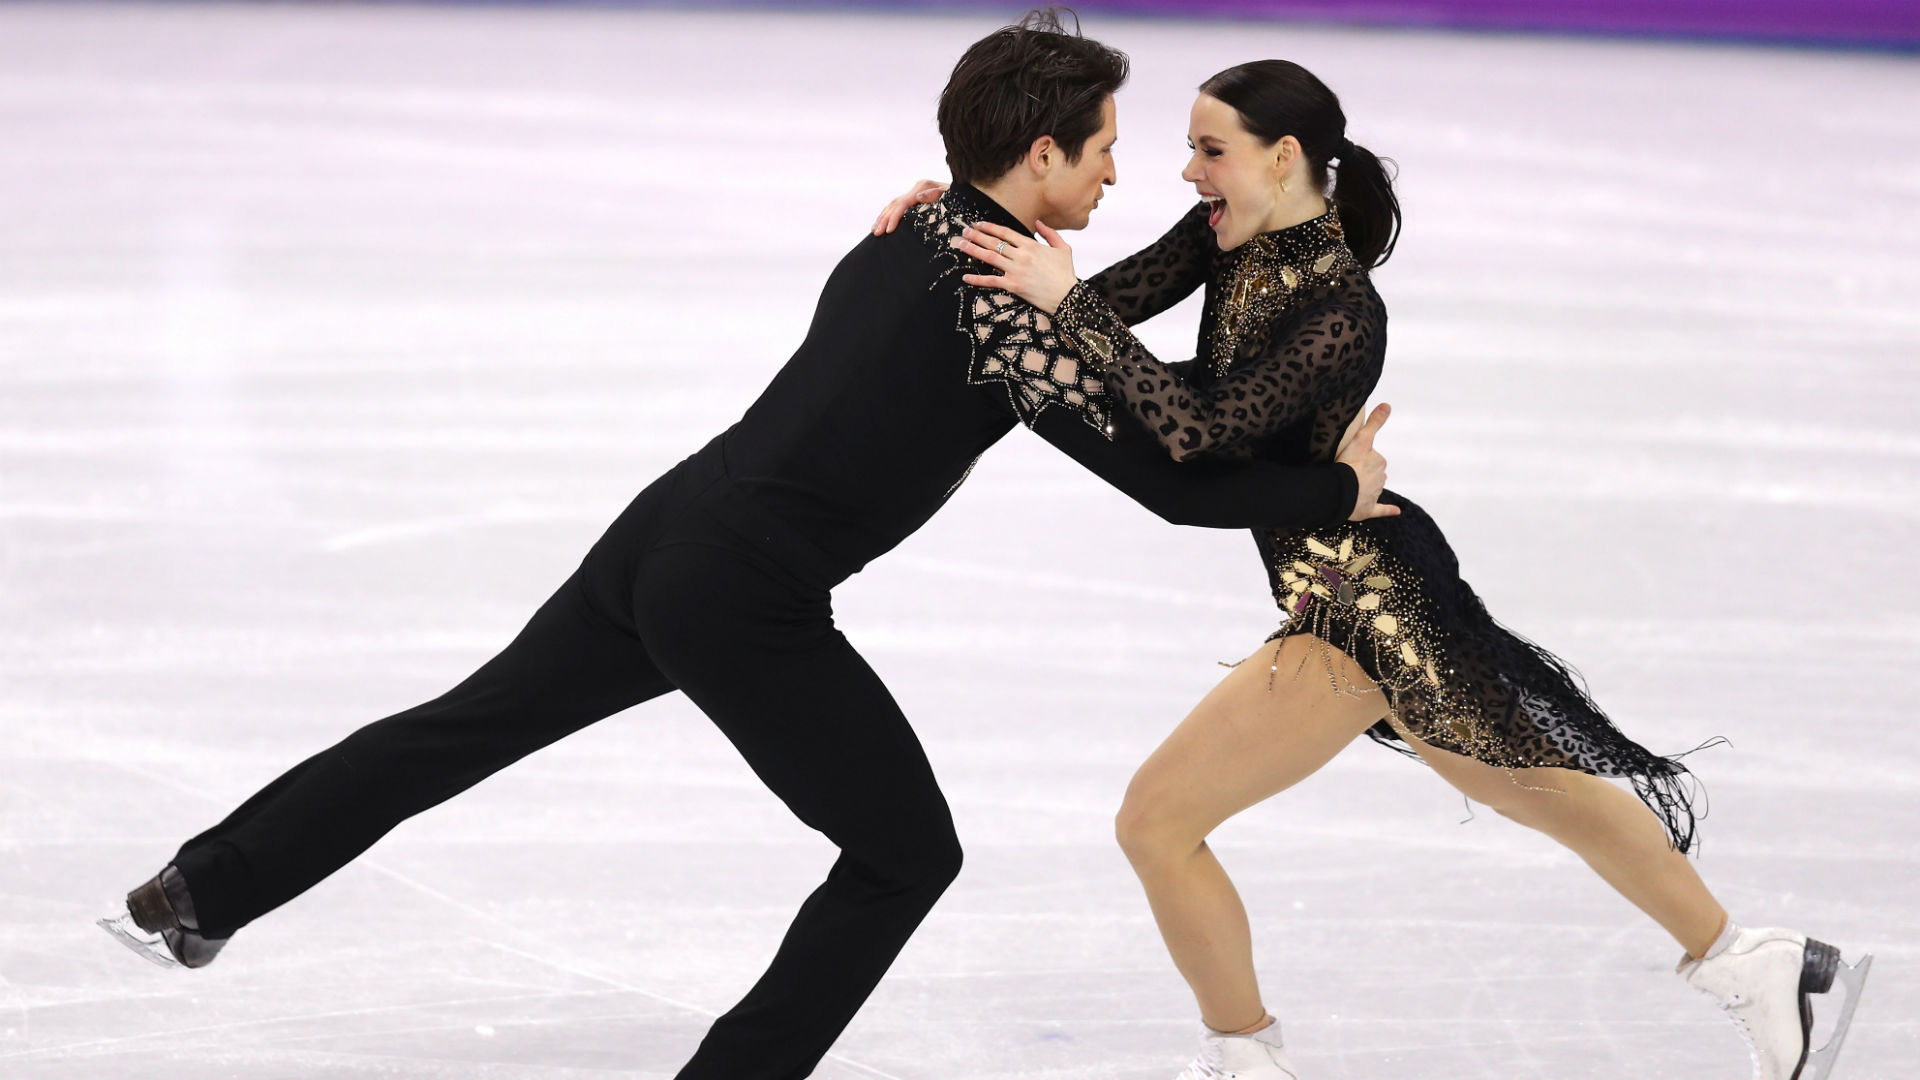 Ice dance darlings Tessa Virtue and Scott Moir win gold